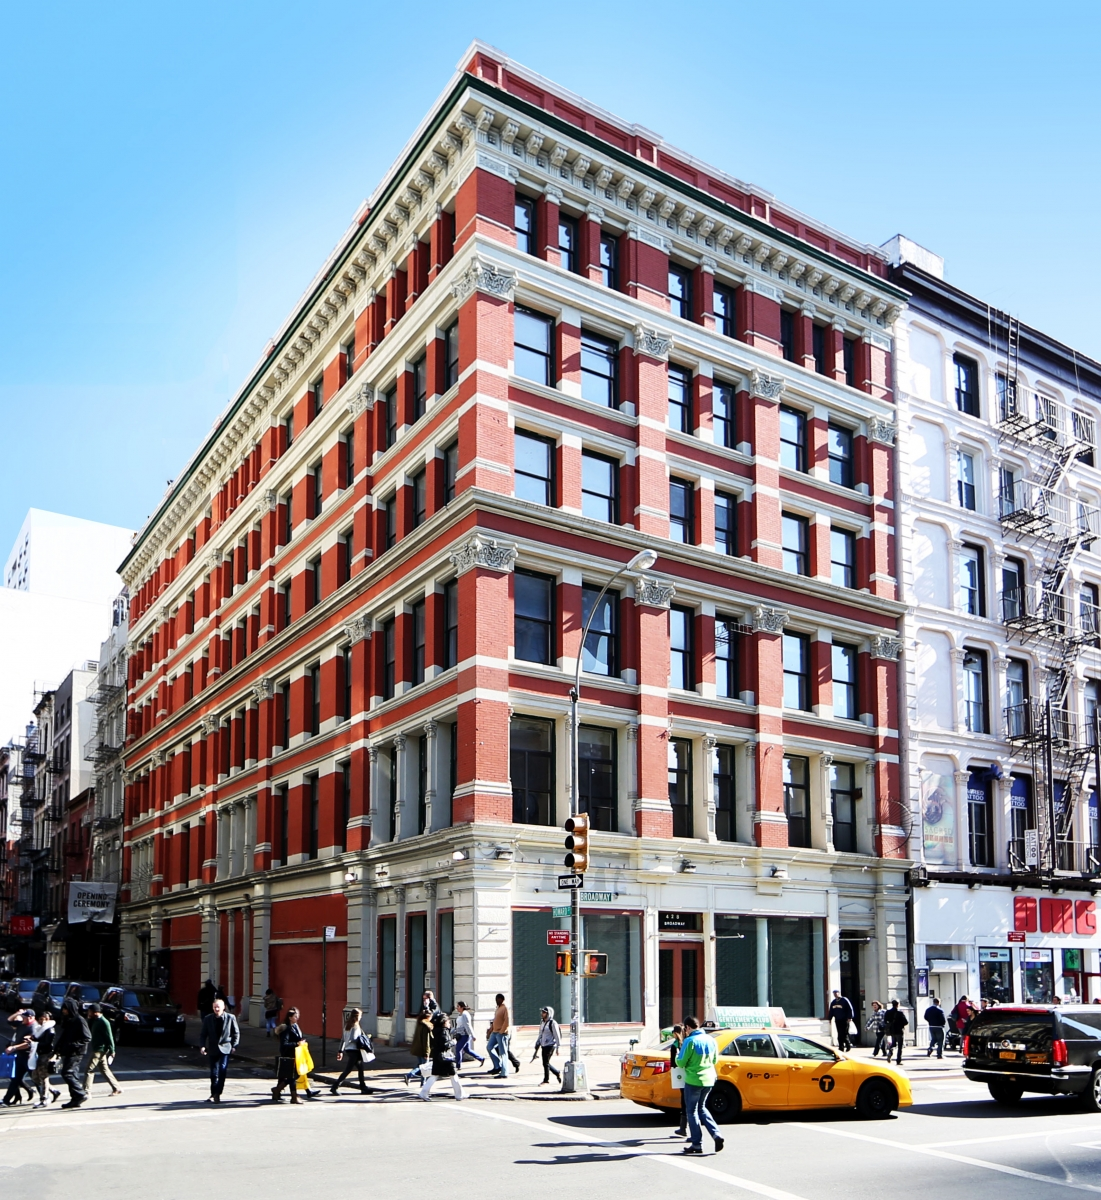 Winick realty group retail leasing consulting 428 for 10 east 39th street 8th floor new york ny 10016